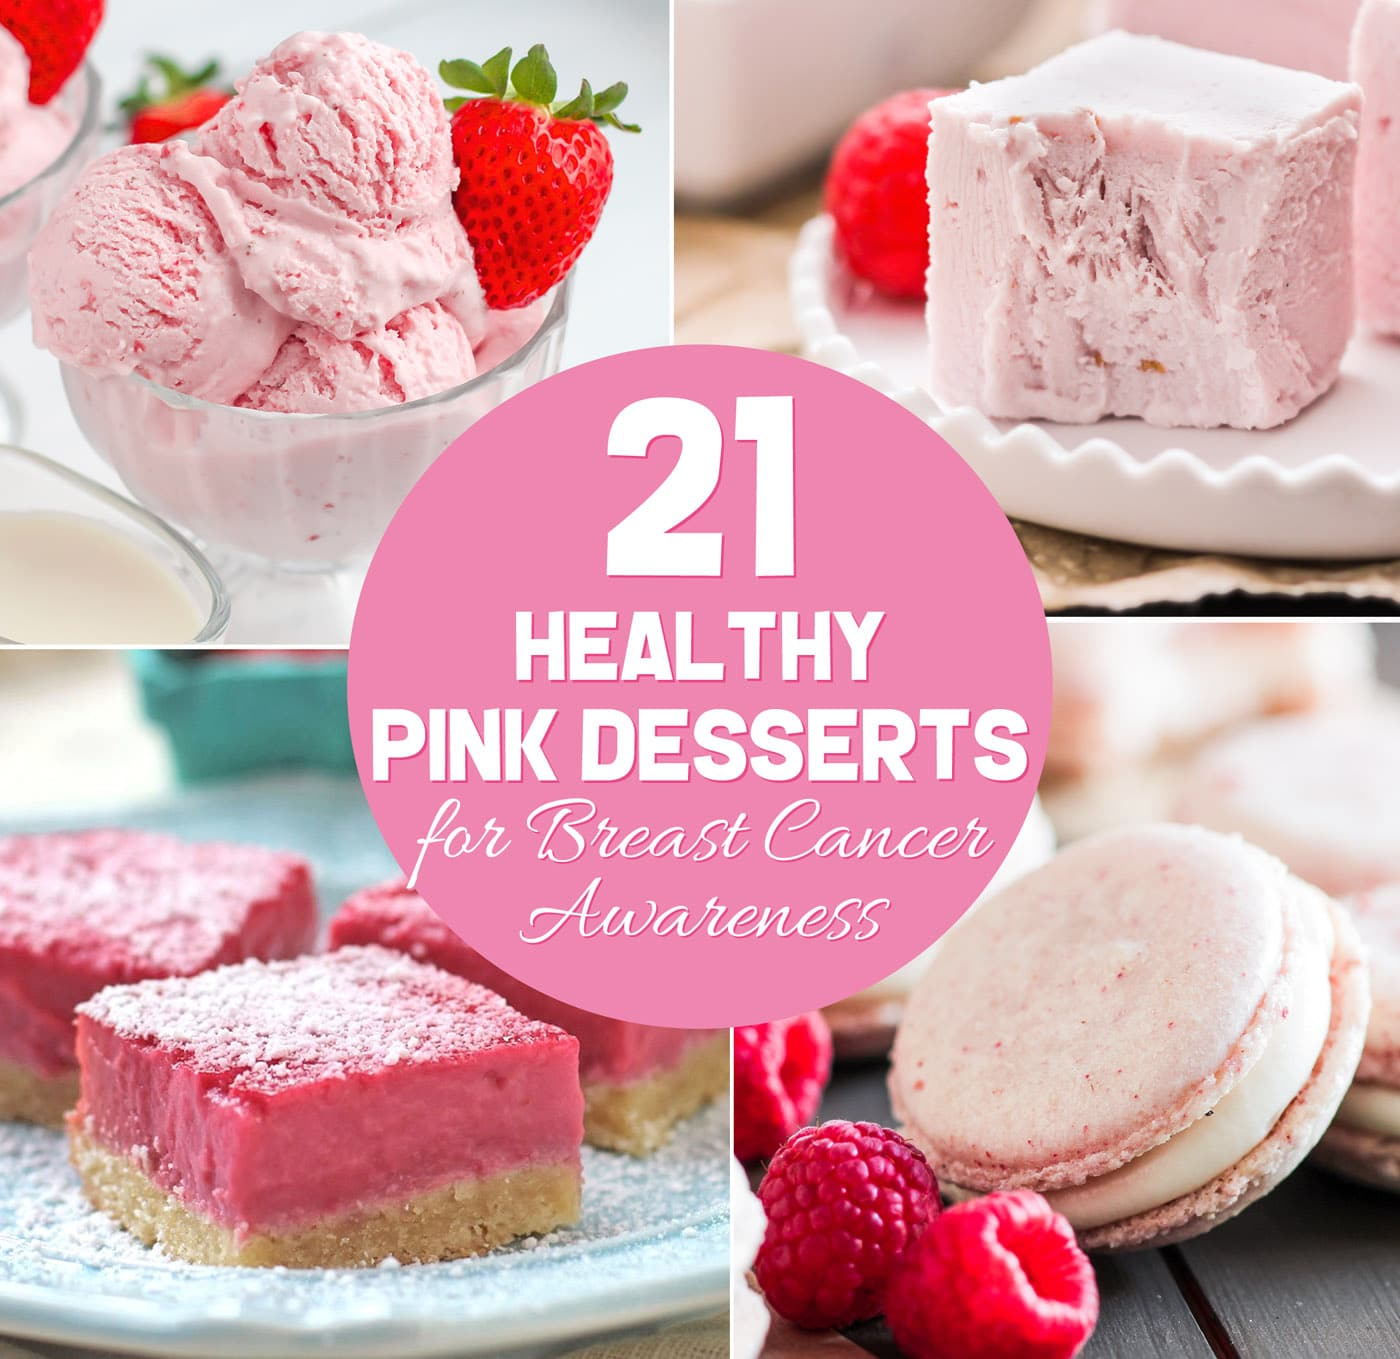 Have a pink October to honor Breast Cancer Awareness Month with these 21 healthy pink desserts! Make them for friends, family, neighbors, a school convention, fundraiser, or yourself! Cake to cupcakes to ice cream to milkshakes and more. Options for everyone: sugar free, low carb, low fat, high protein, high fiber, whole grain, gluten free, dairy free, vegan, paleo, or keto. #glutenfreedessert #vegandessert #highprotein #healthycake #glutenfreecake #sugarfreecake #lowcarbicecream #ketofudge